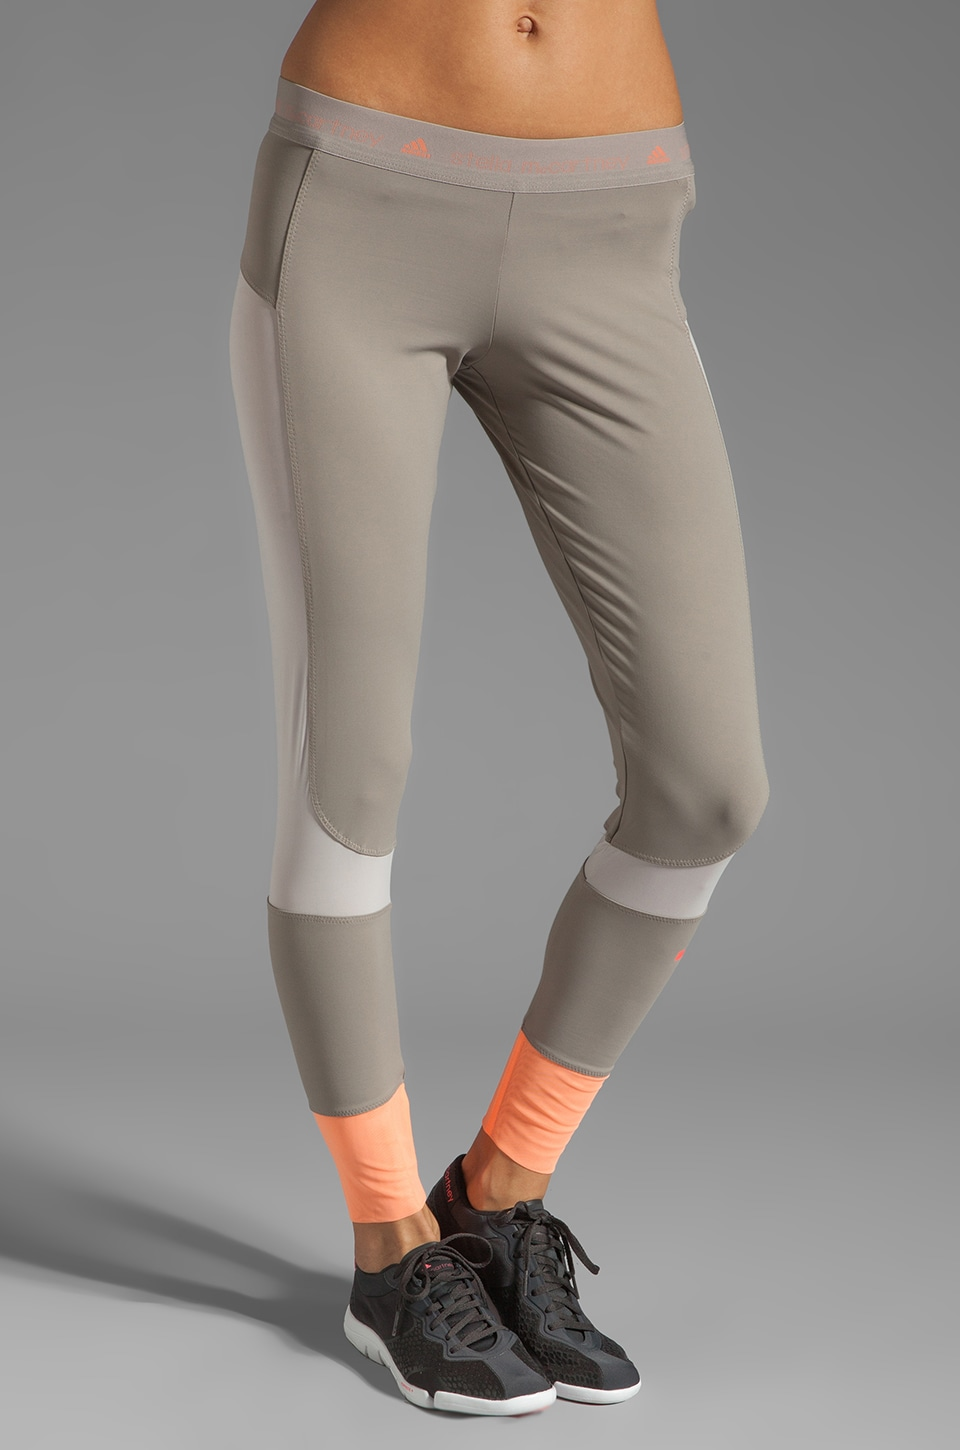 adidas by Stella McCartney Athletic Pant in Grey Feathers/Powder/Ultra Bright